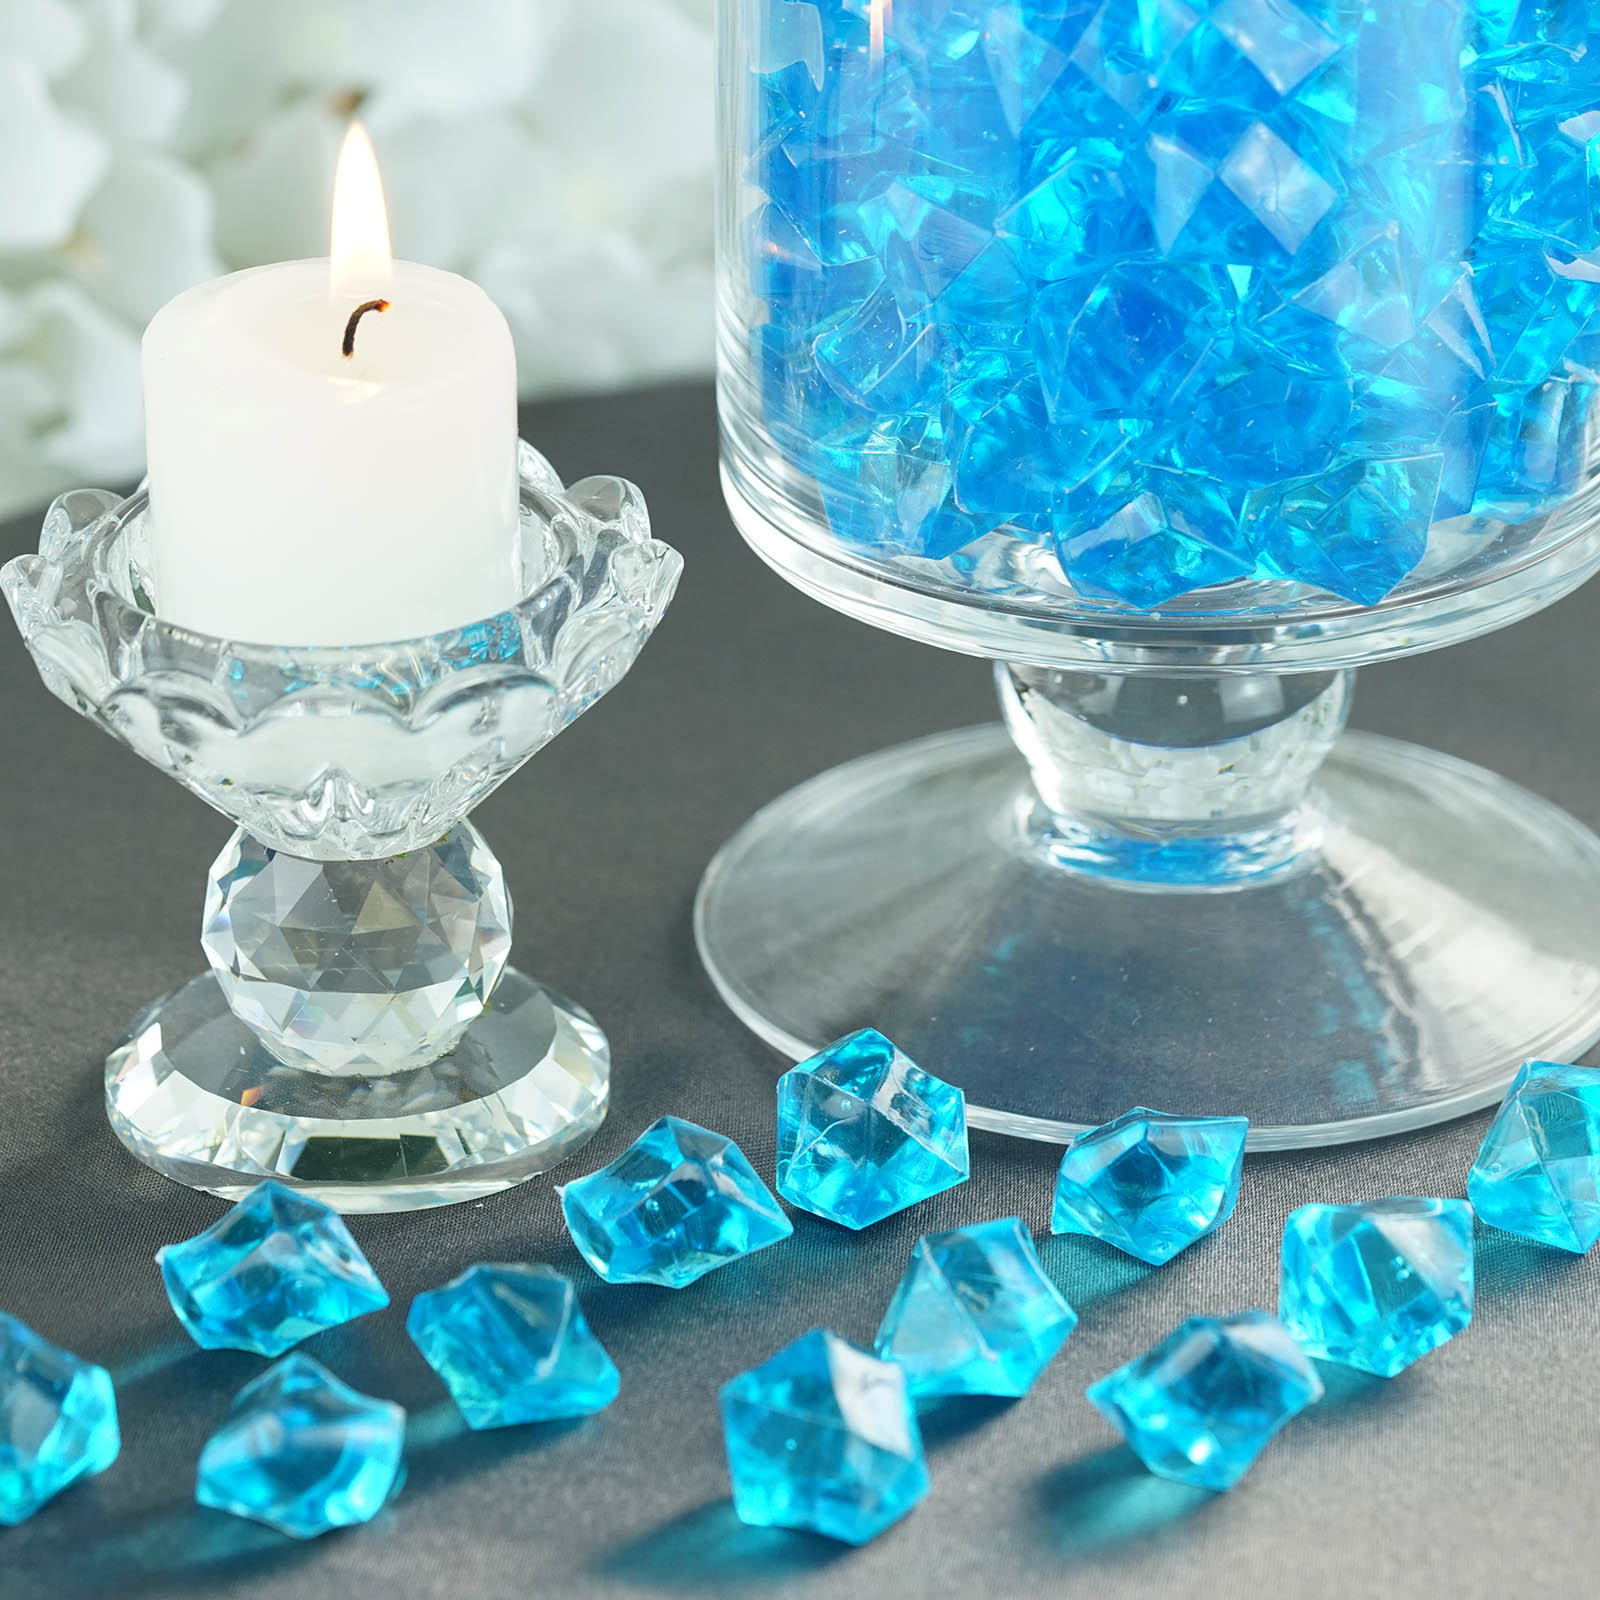 300-Acrylic-Ice-CRYSTAL-LIKE-Pieces-Wedding-Centerpieces-Decorations-Supplies thumbnail 62